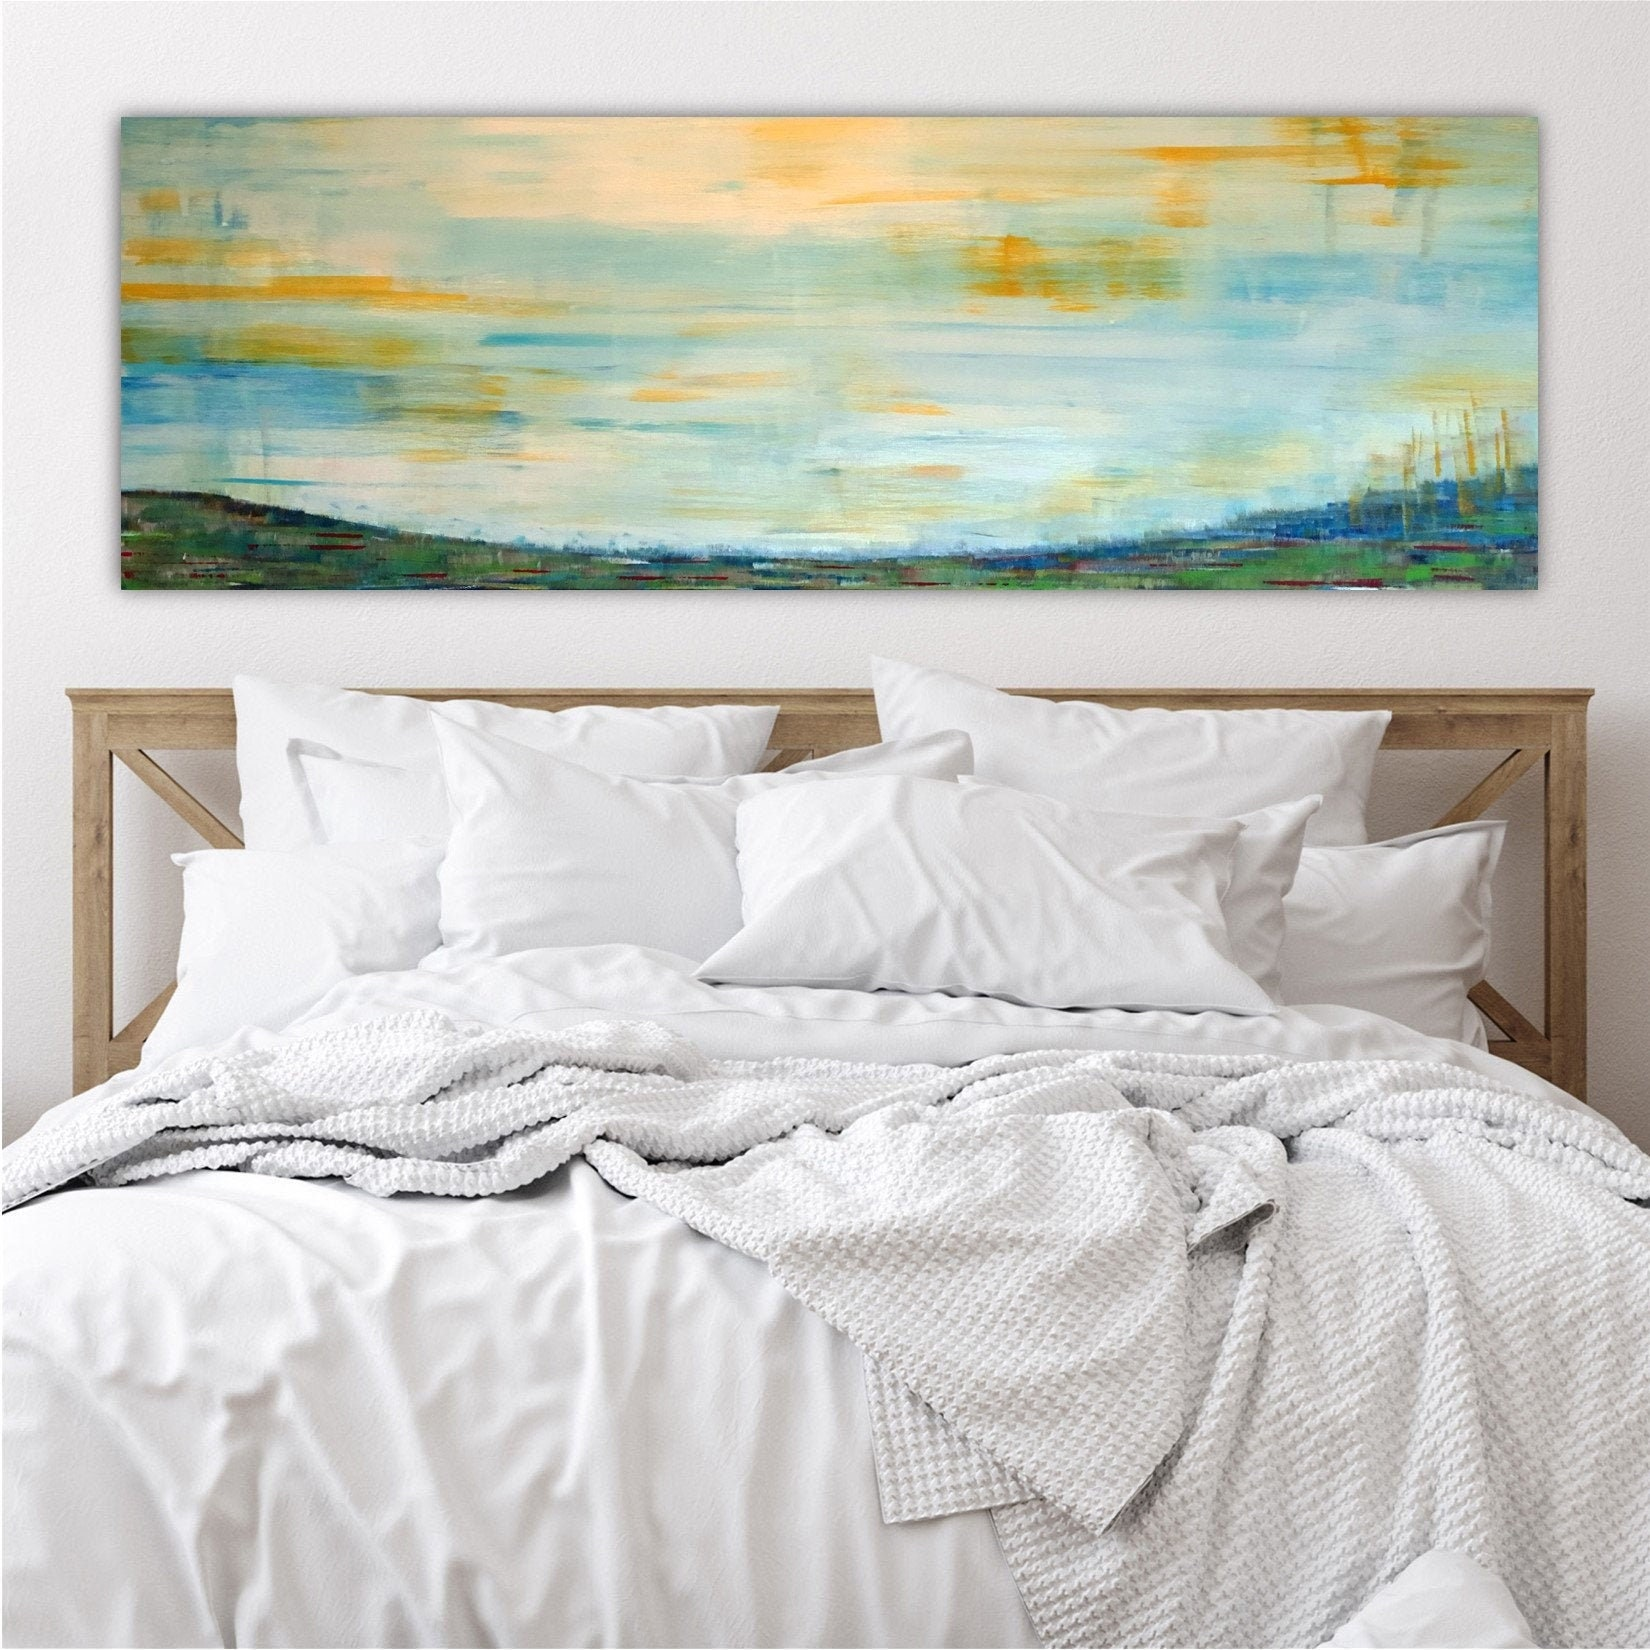 Large Bedroom Wall Decor Over the Bed Master Bedroom Wall Art Extra Large Wall Art Mid Century Art Large Horizontal Wall Art Wall Art Canvas